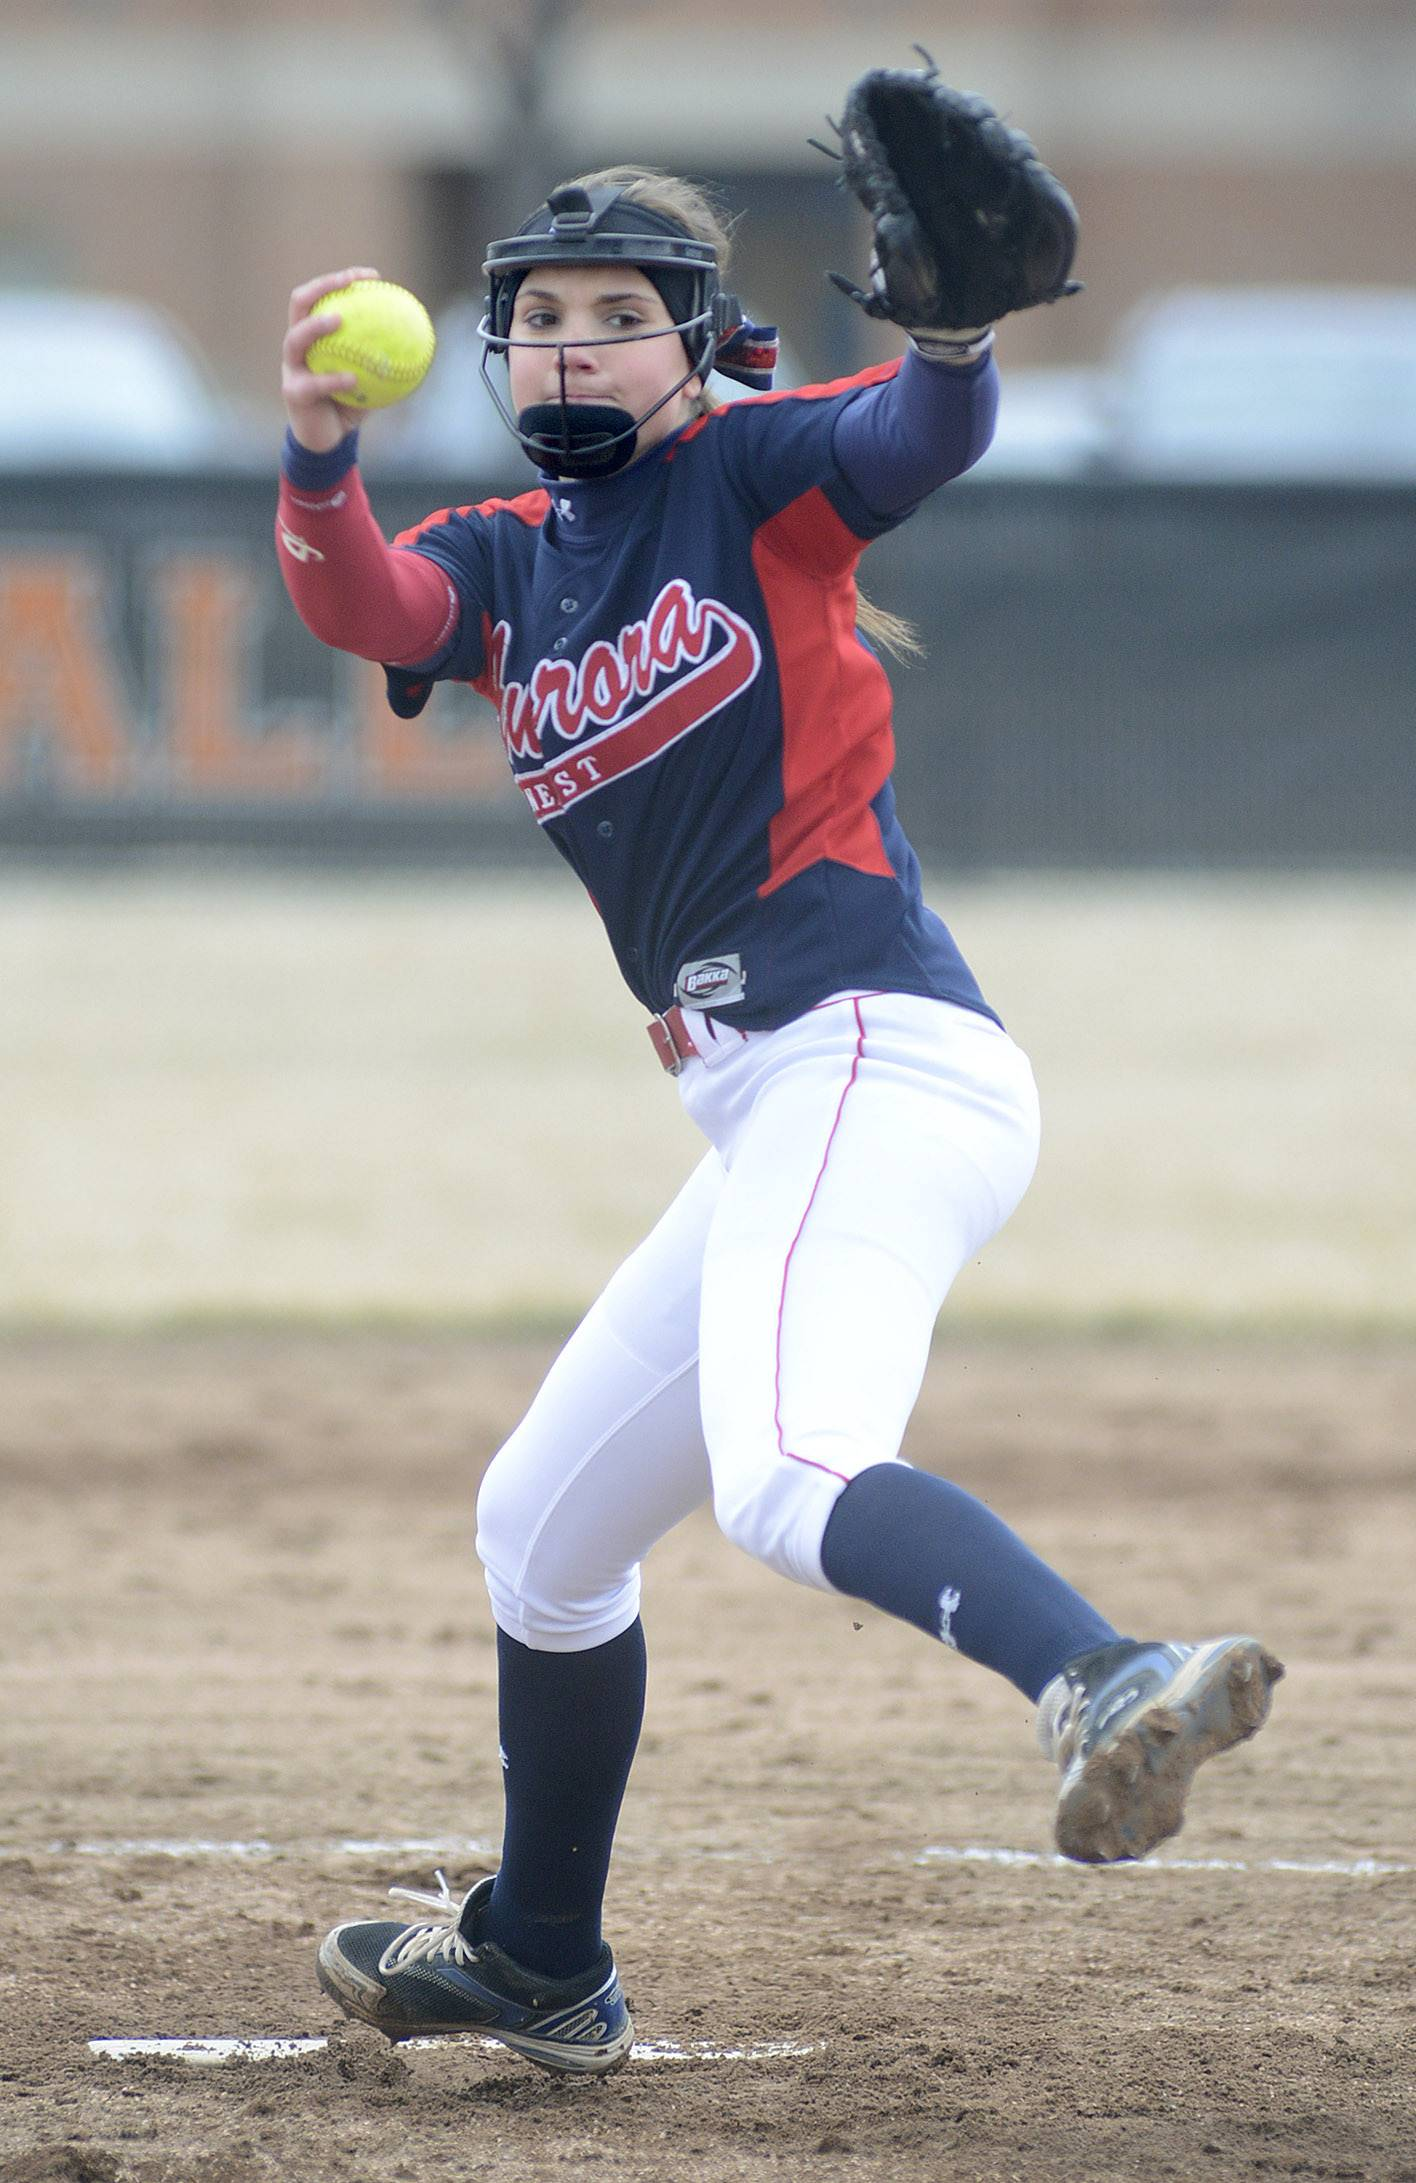 West Aurora's Kaylee Hayton winds up for a pitch in the Blackhawks' 3-2 win over St. Charles East in Game 1 of a doubleheader Friday in St. Charles.